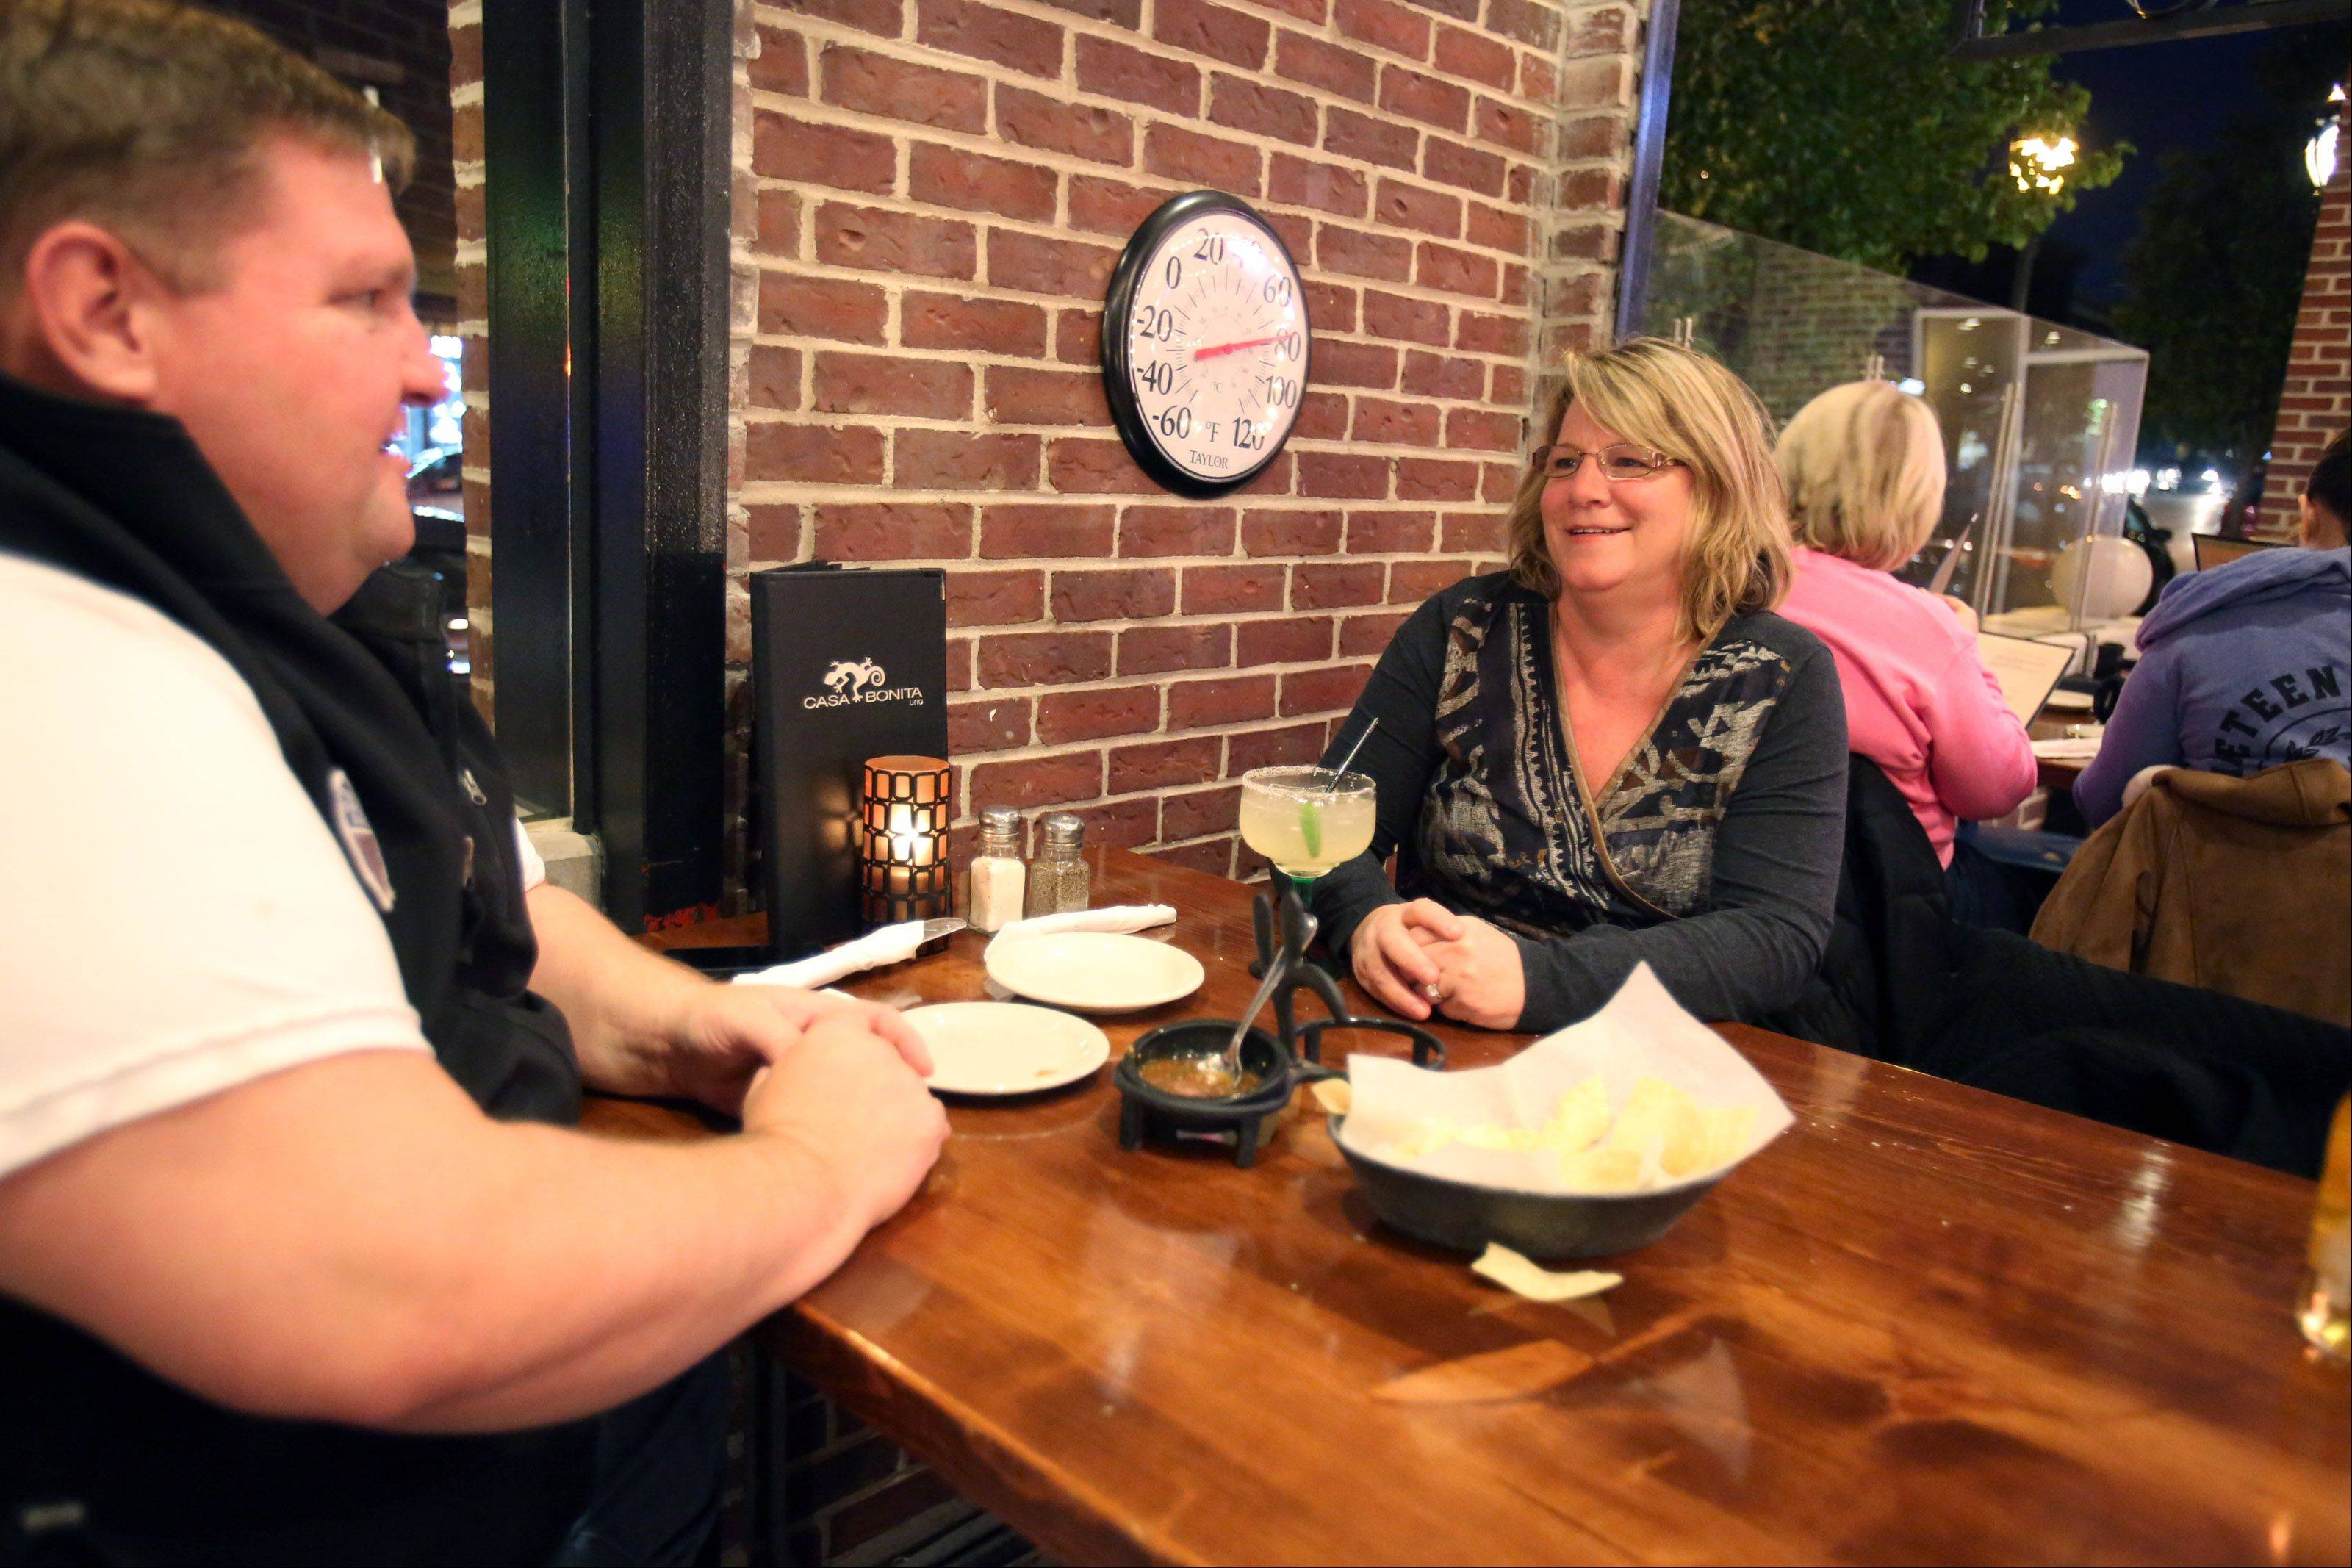 Despite fall temperatures, the patio at Casa Bonita hovers around 80 degrees as Larry and Dawn Kunkel of Libertyville enjoy drinks outdoors.